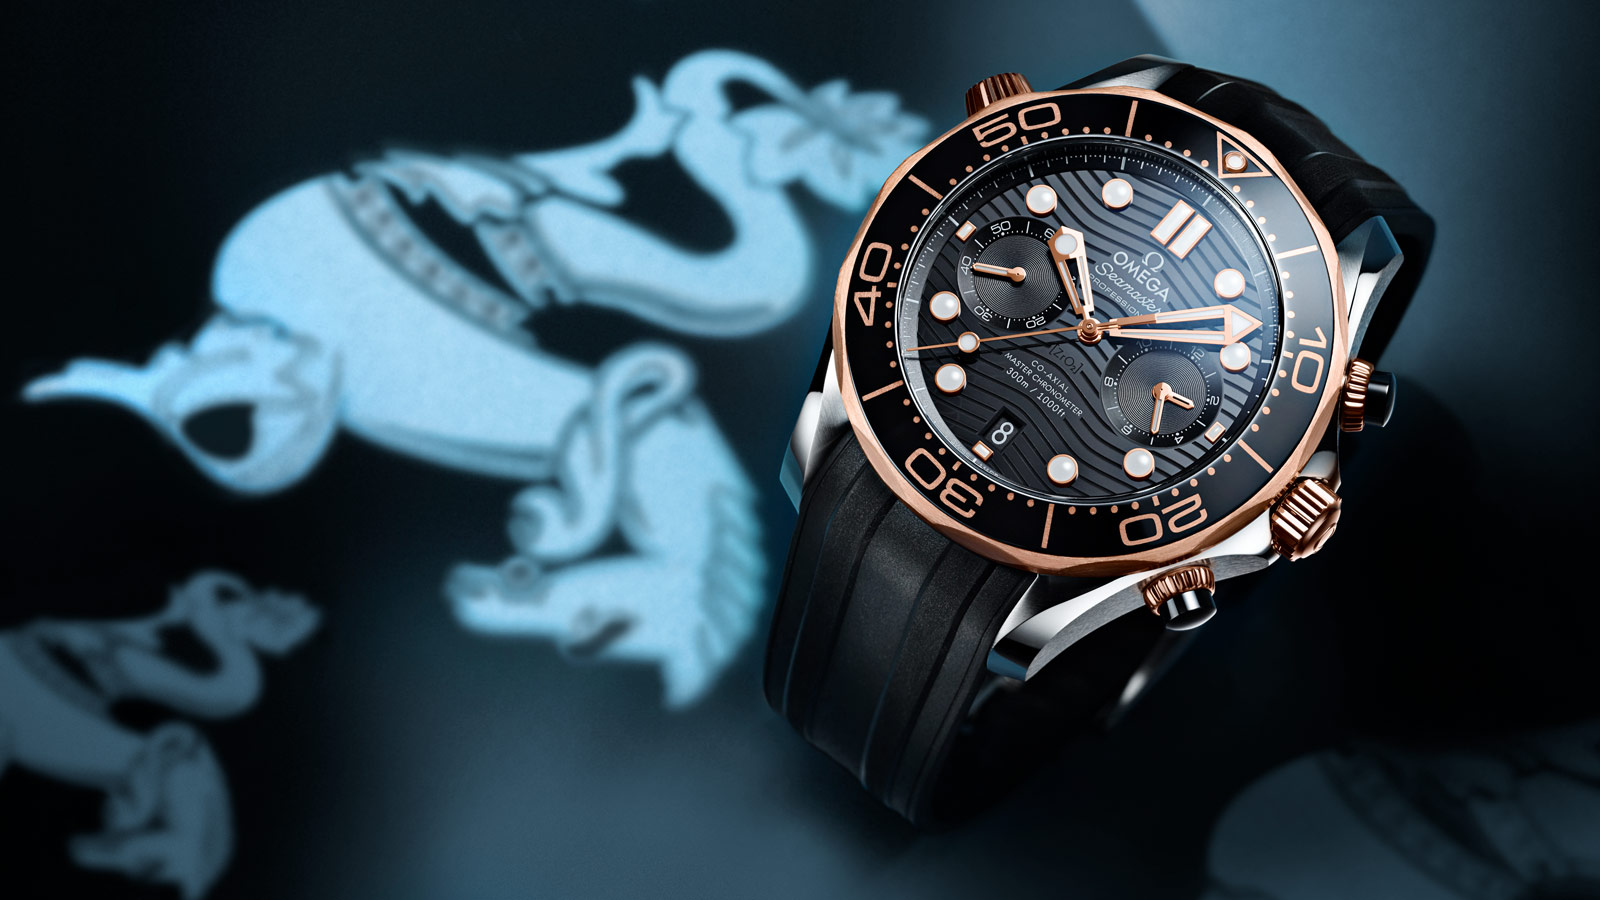 Seamaster ダイバー 300M Diver 300M Omega Co‑Axial Master Chronometer Chronograph 44 mm - 210.22.44.51.01.001 - ビュー 1